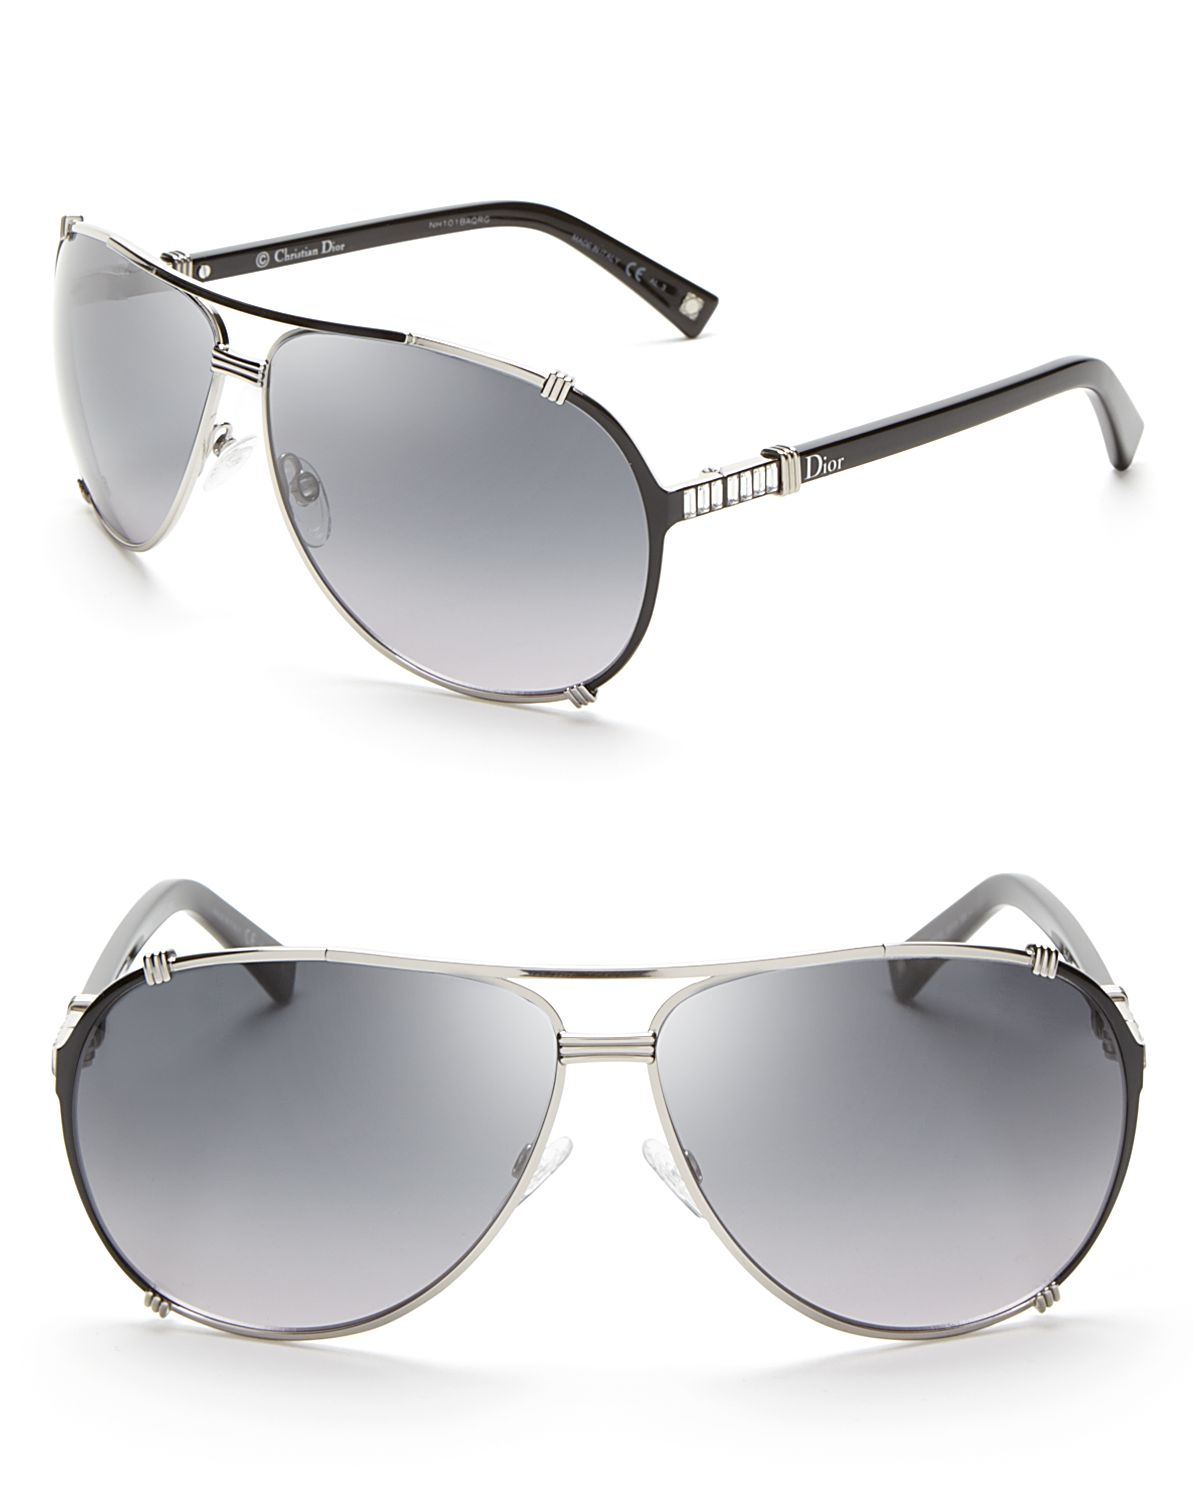 4503b6f98b39 Dior Chicago Metal Aviator Sunglasses With Crystals « Heritage Malta